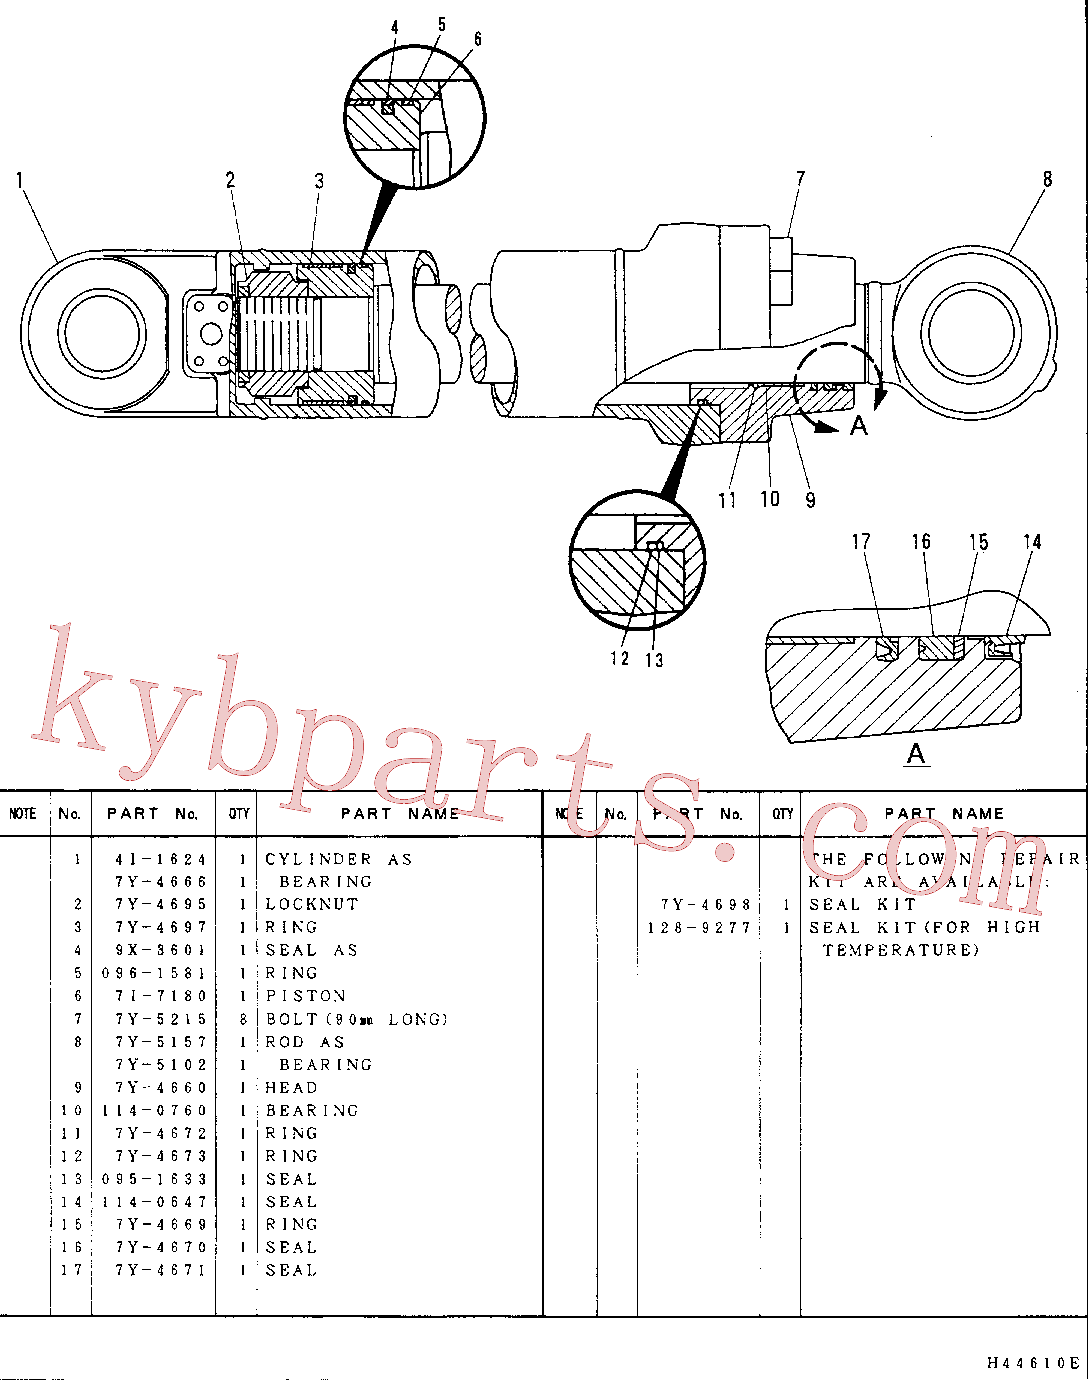 CAT 7Y-5102 for 322-A Excavator(EXC) hydraulic system 7Y-5150 Assembly